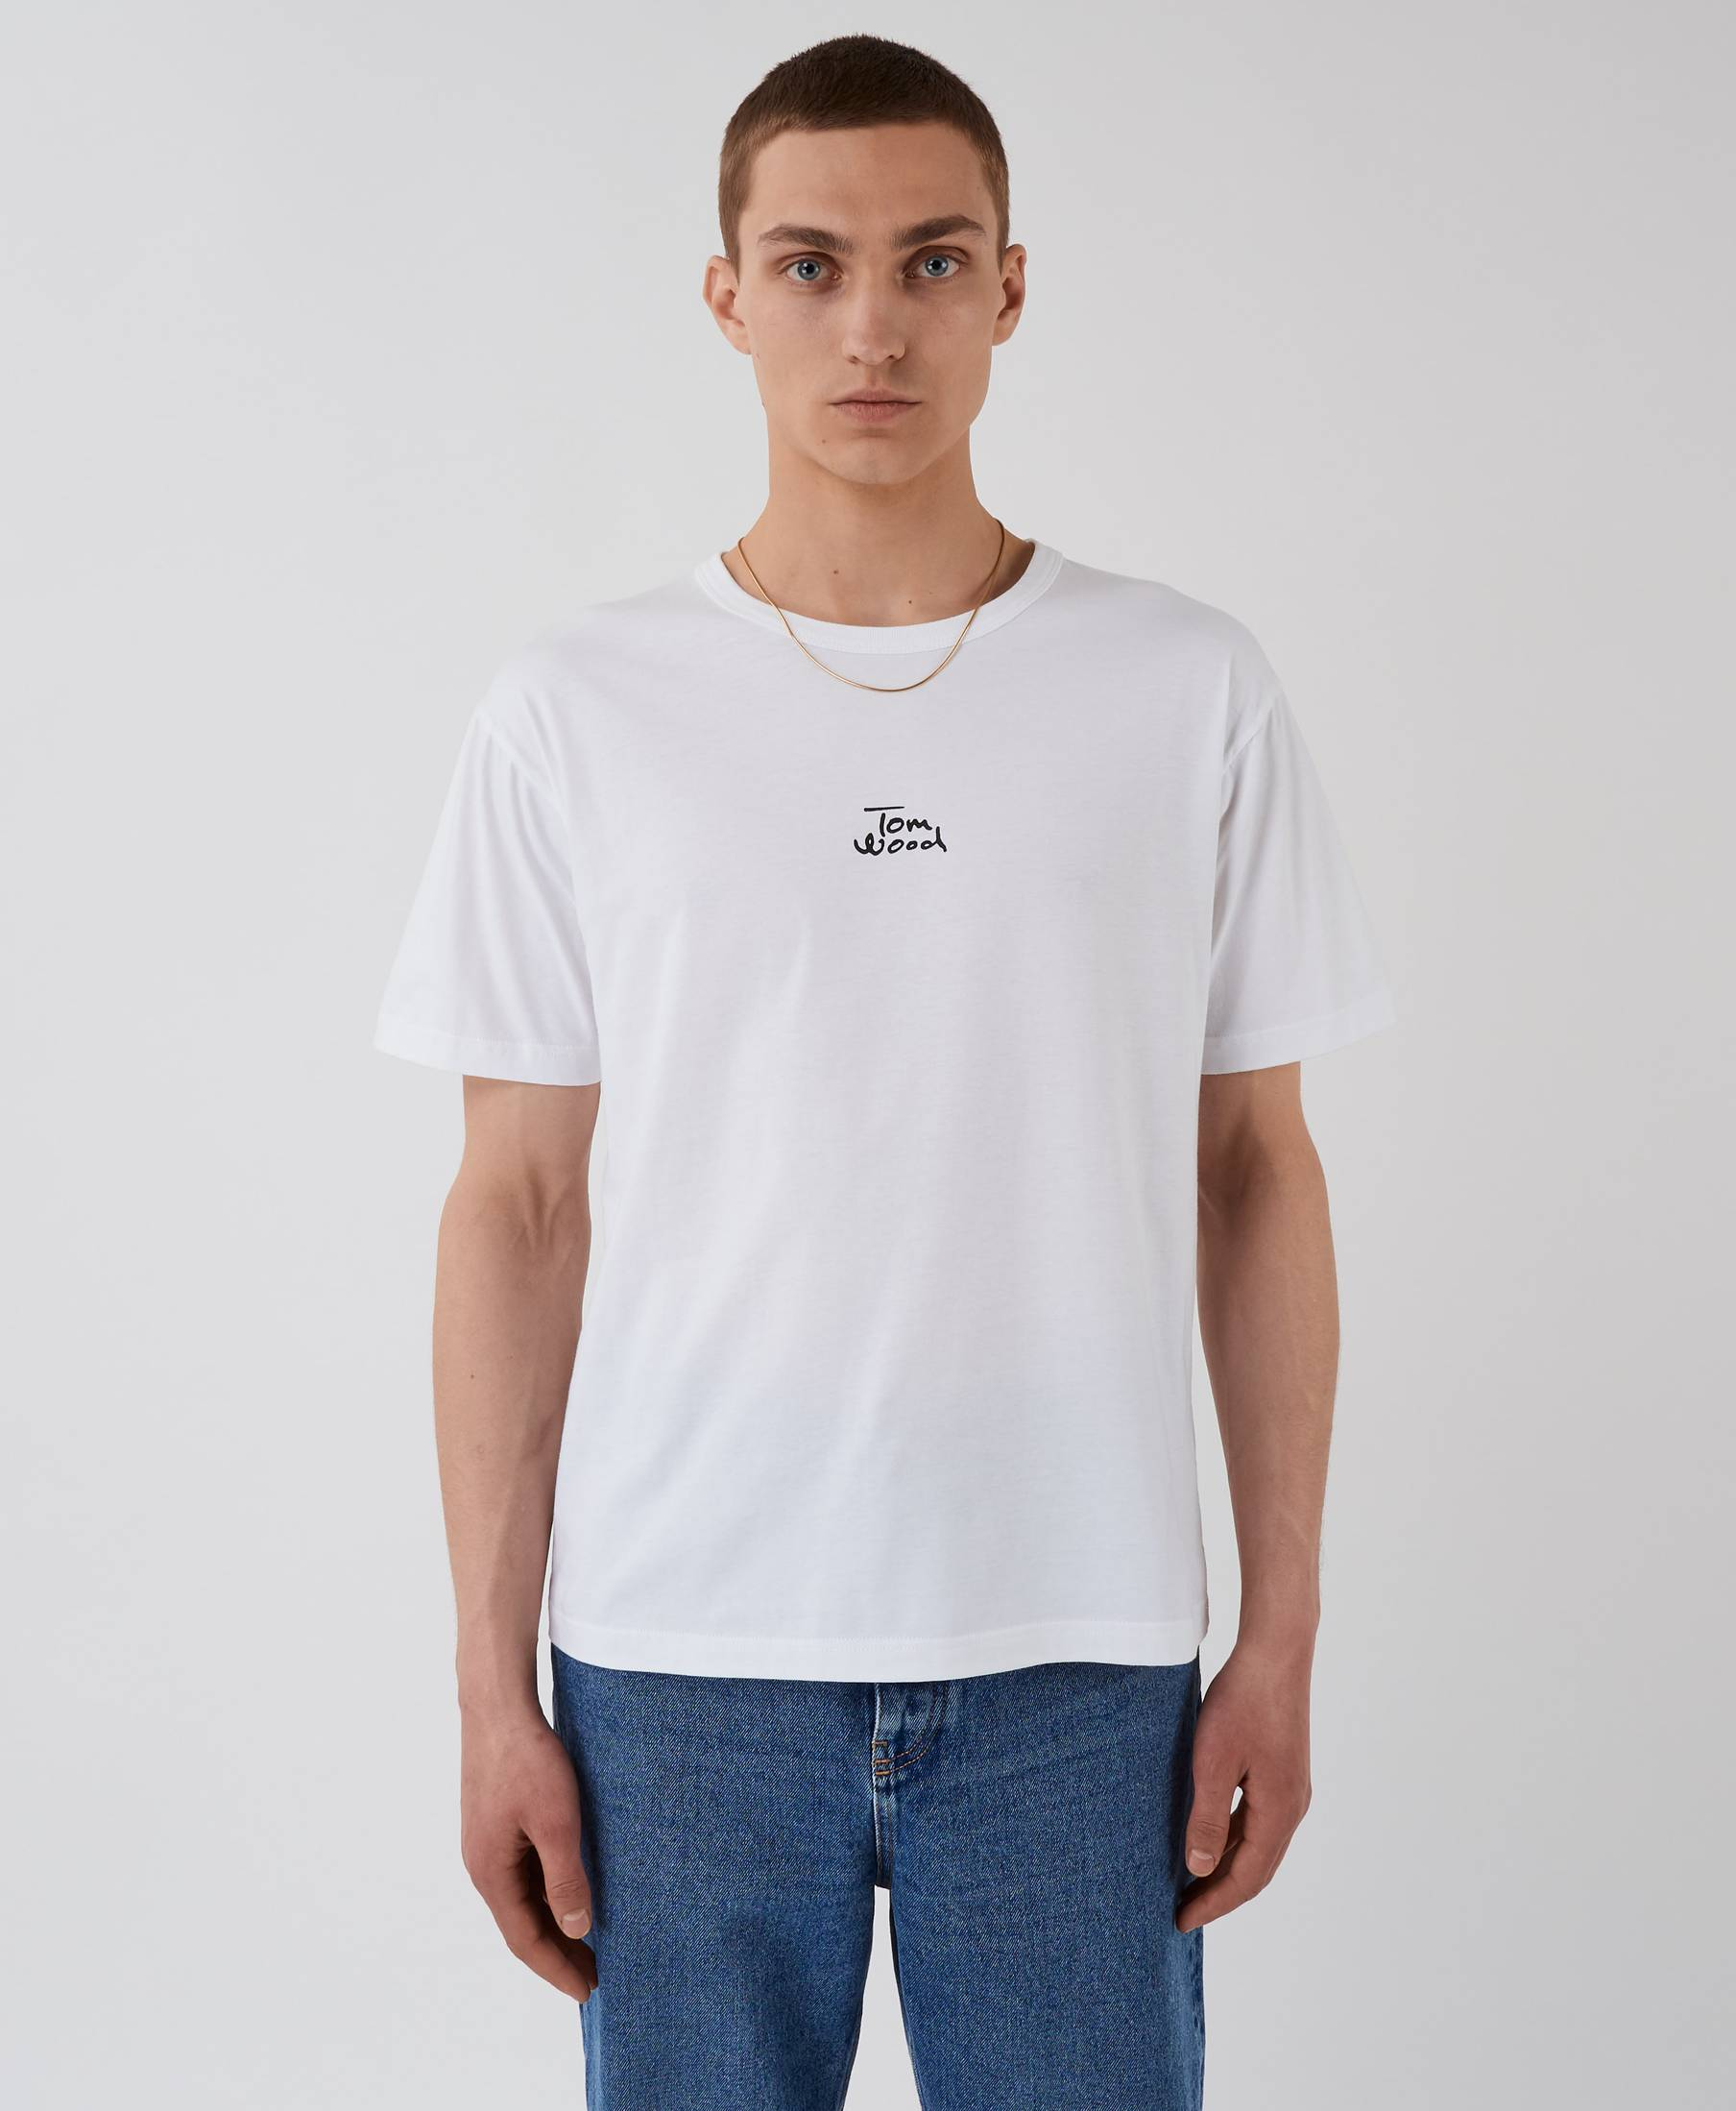 Changes Tee Virgin White